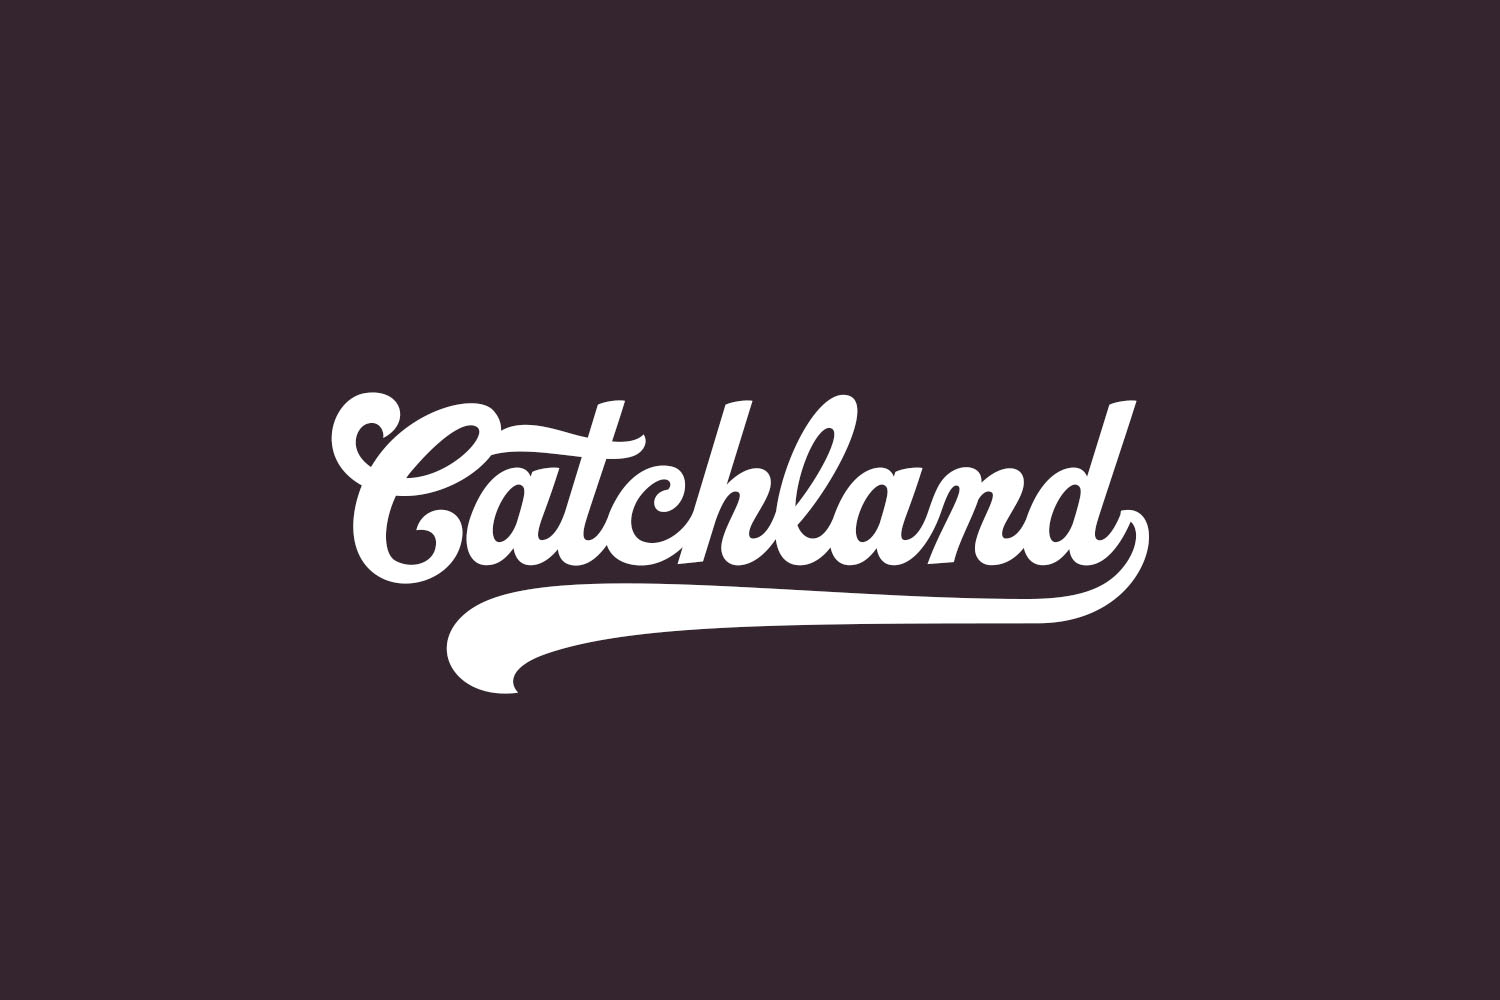 Catchland Free Font